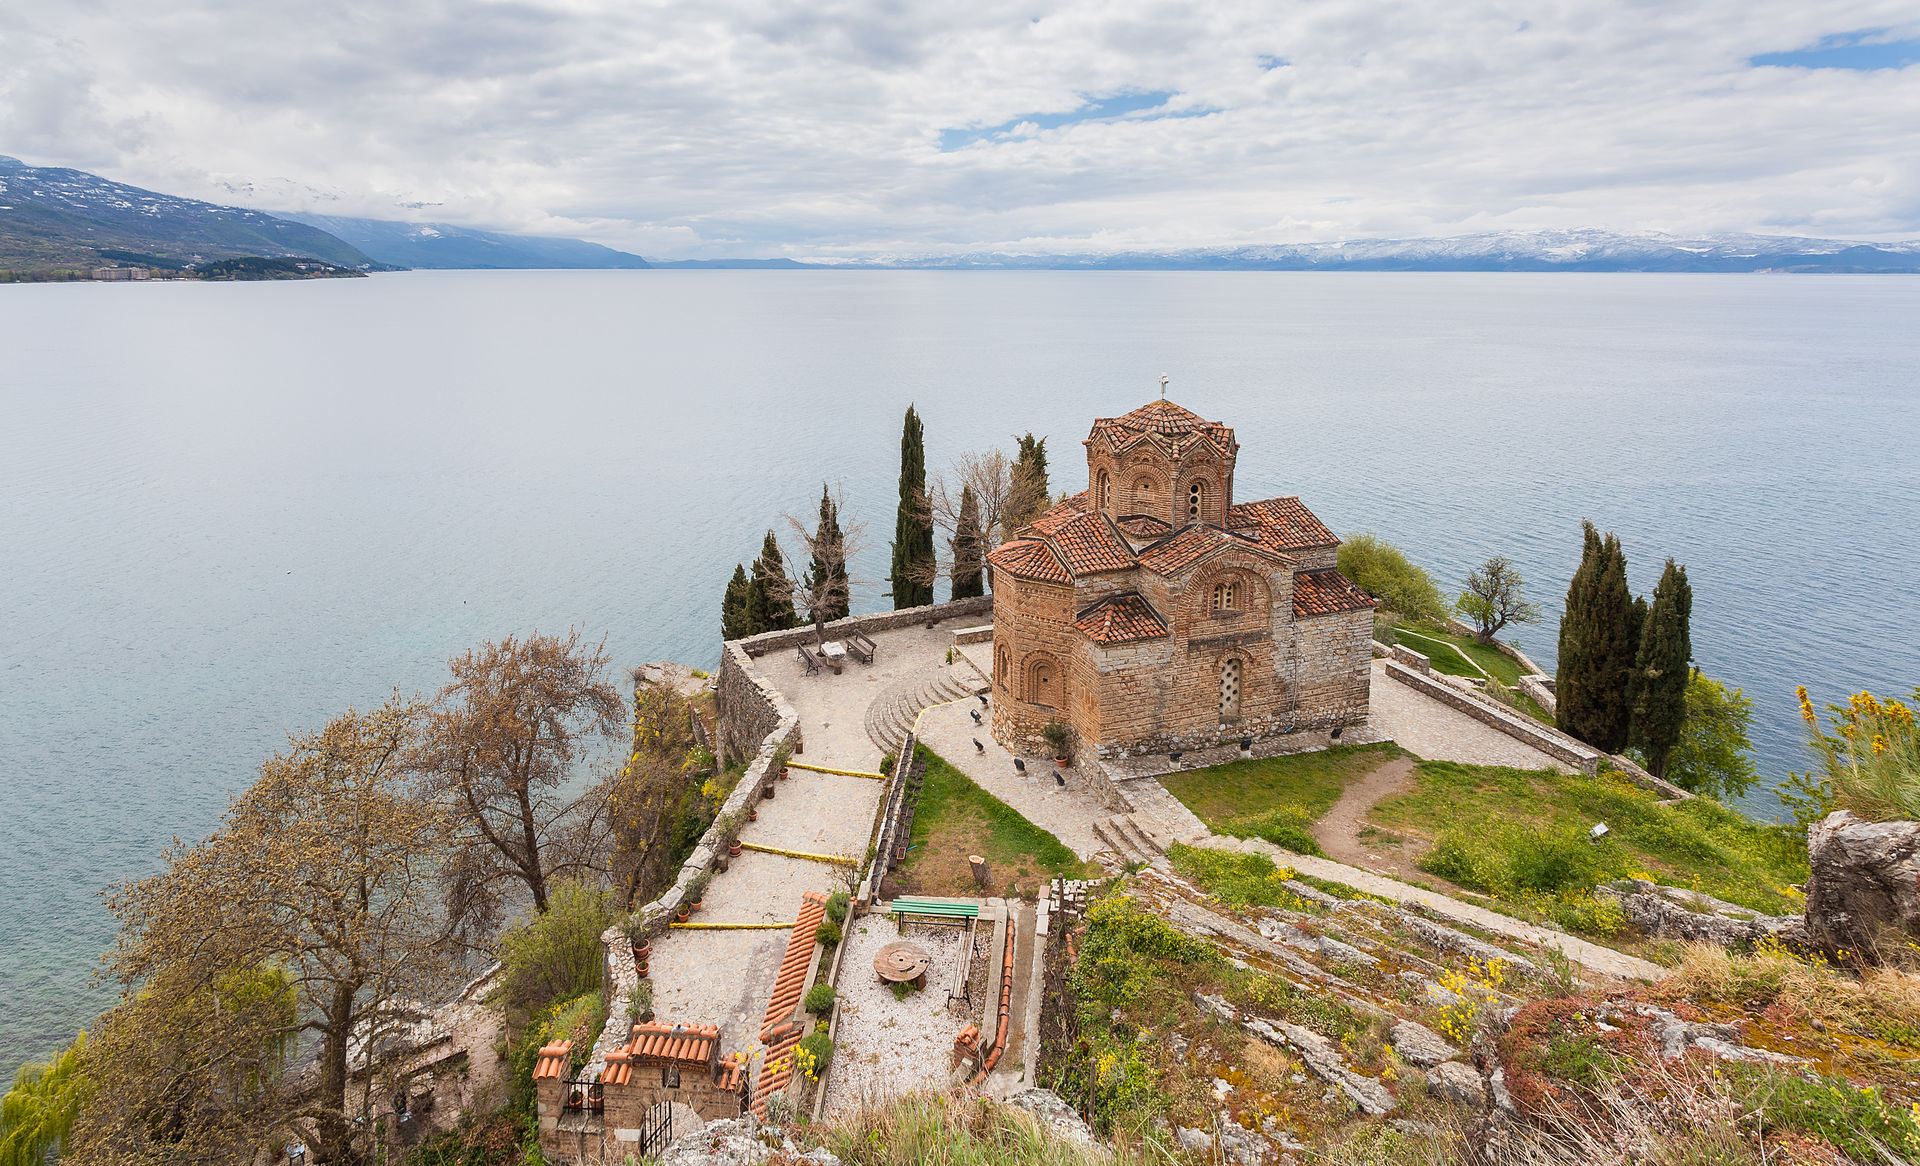 The Macedonian Orthodox church of Saint John at Kaneo, located on the cliff over the Kaneo Beach at the Ohrid Lake nearby the city of Ohrid, Republic of Macedonia, is a pilgrimage iman in the country. The age of the cruciform-shaped temple is uncertain but it was probably erected in the middle of the 14th century.